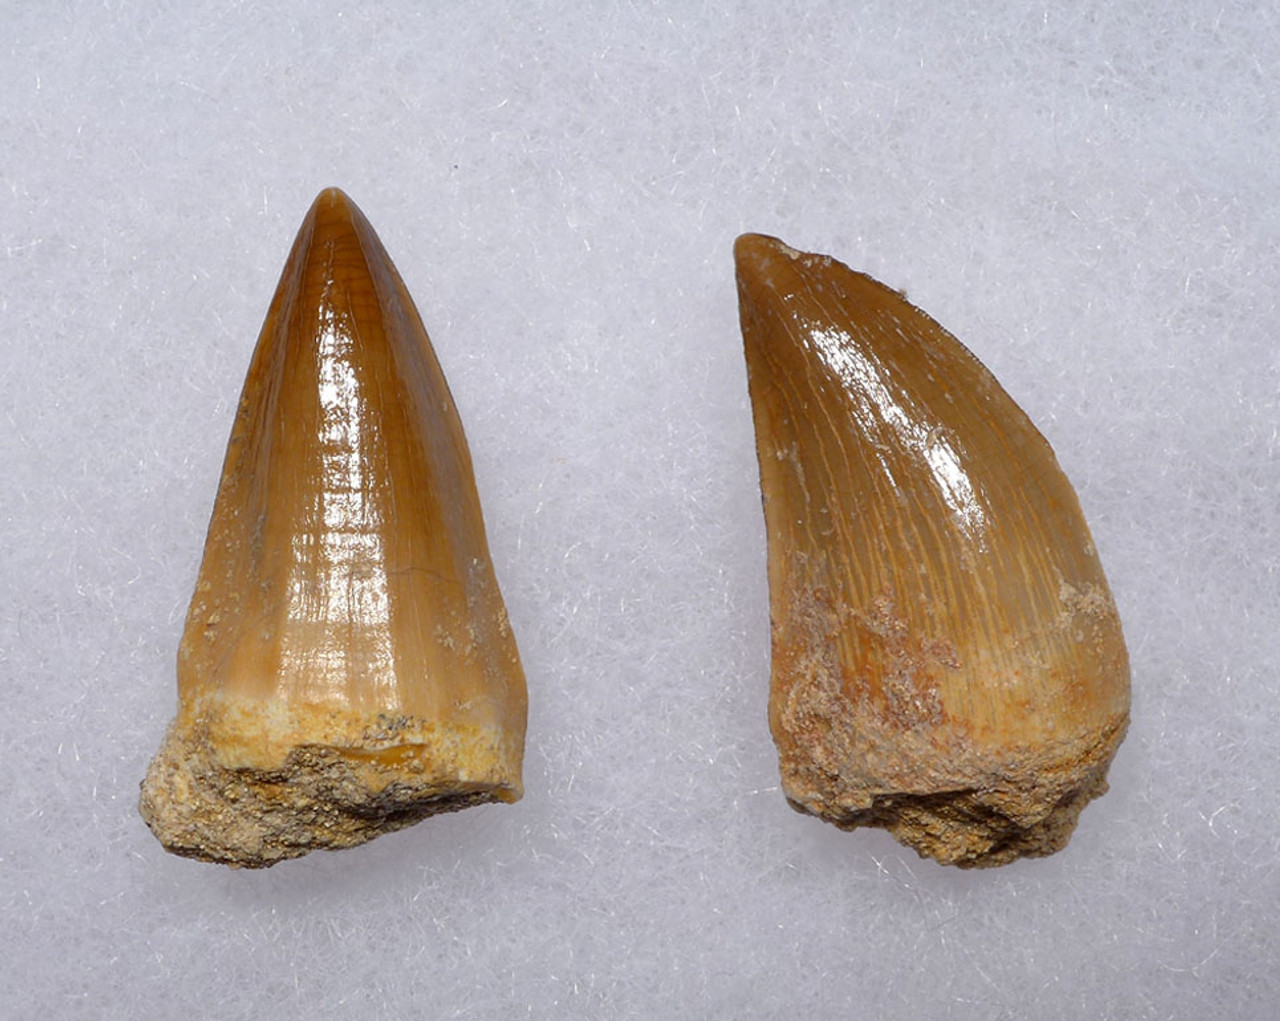 TWO PREMIUM FOSSIL MOSASAUR TEETH FROM A PREHISTORIC MARINE REPTILE *DT1-137